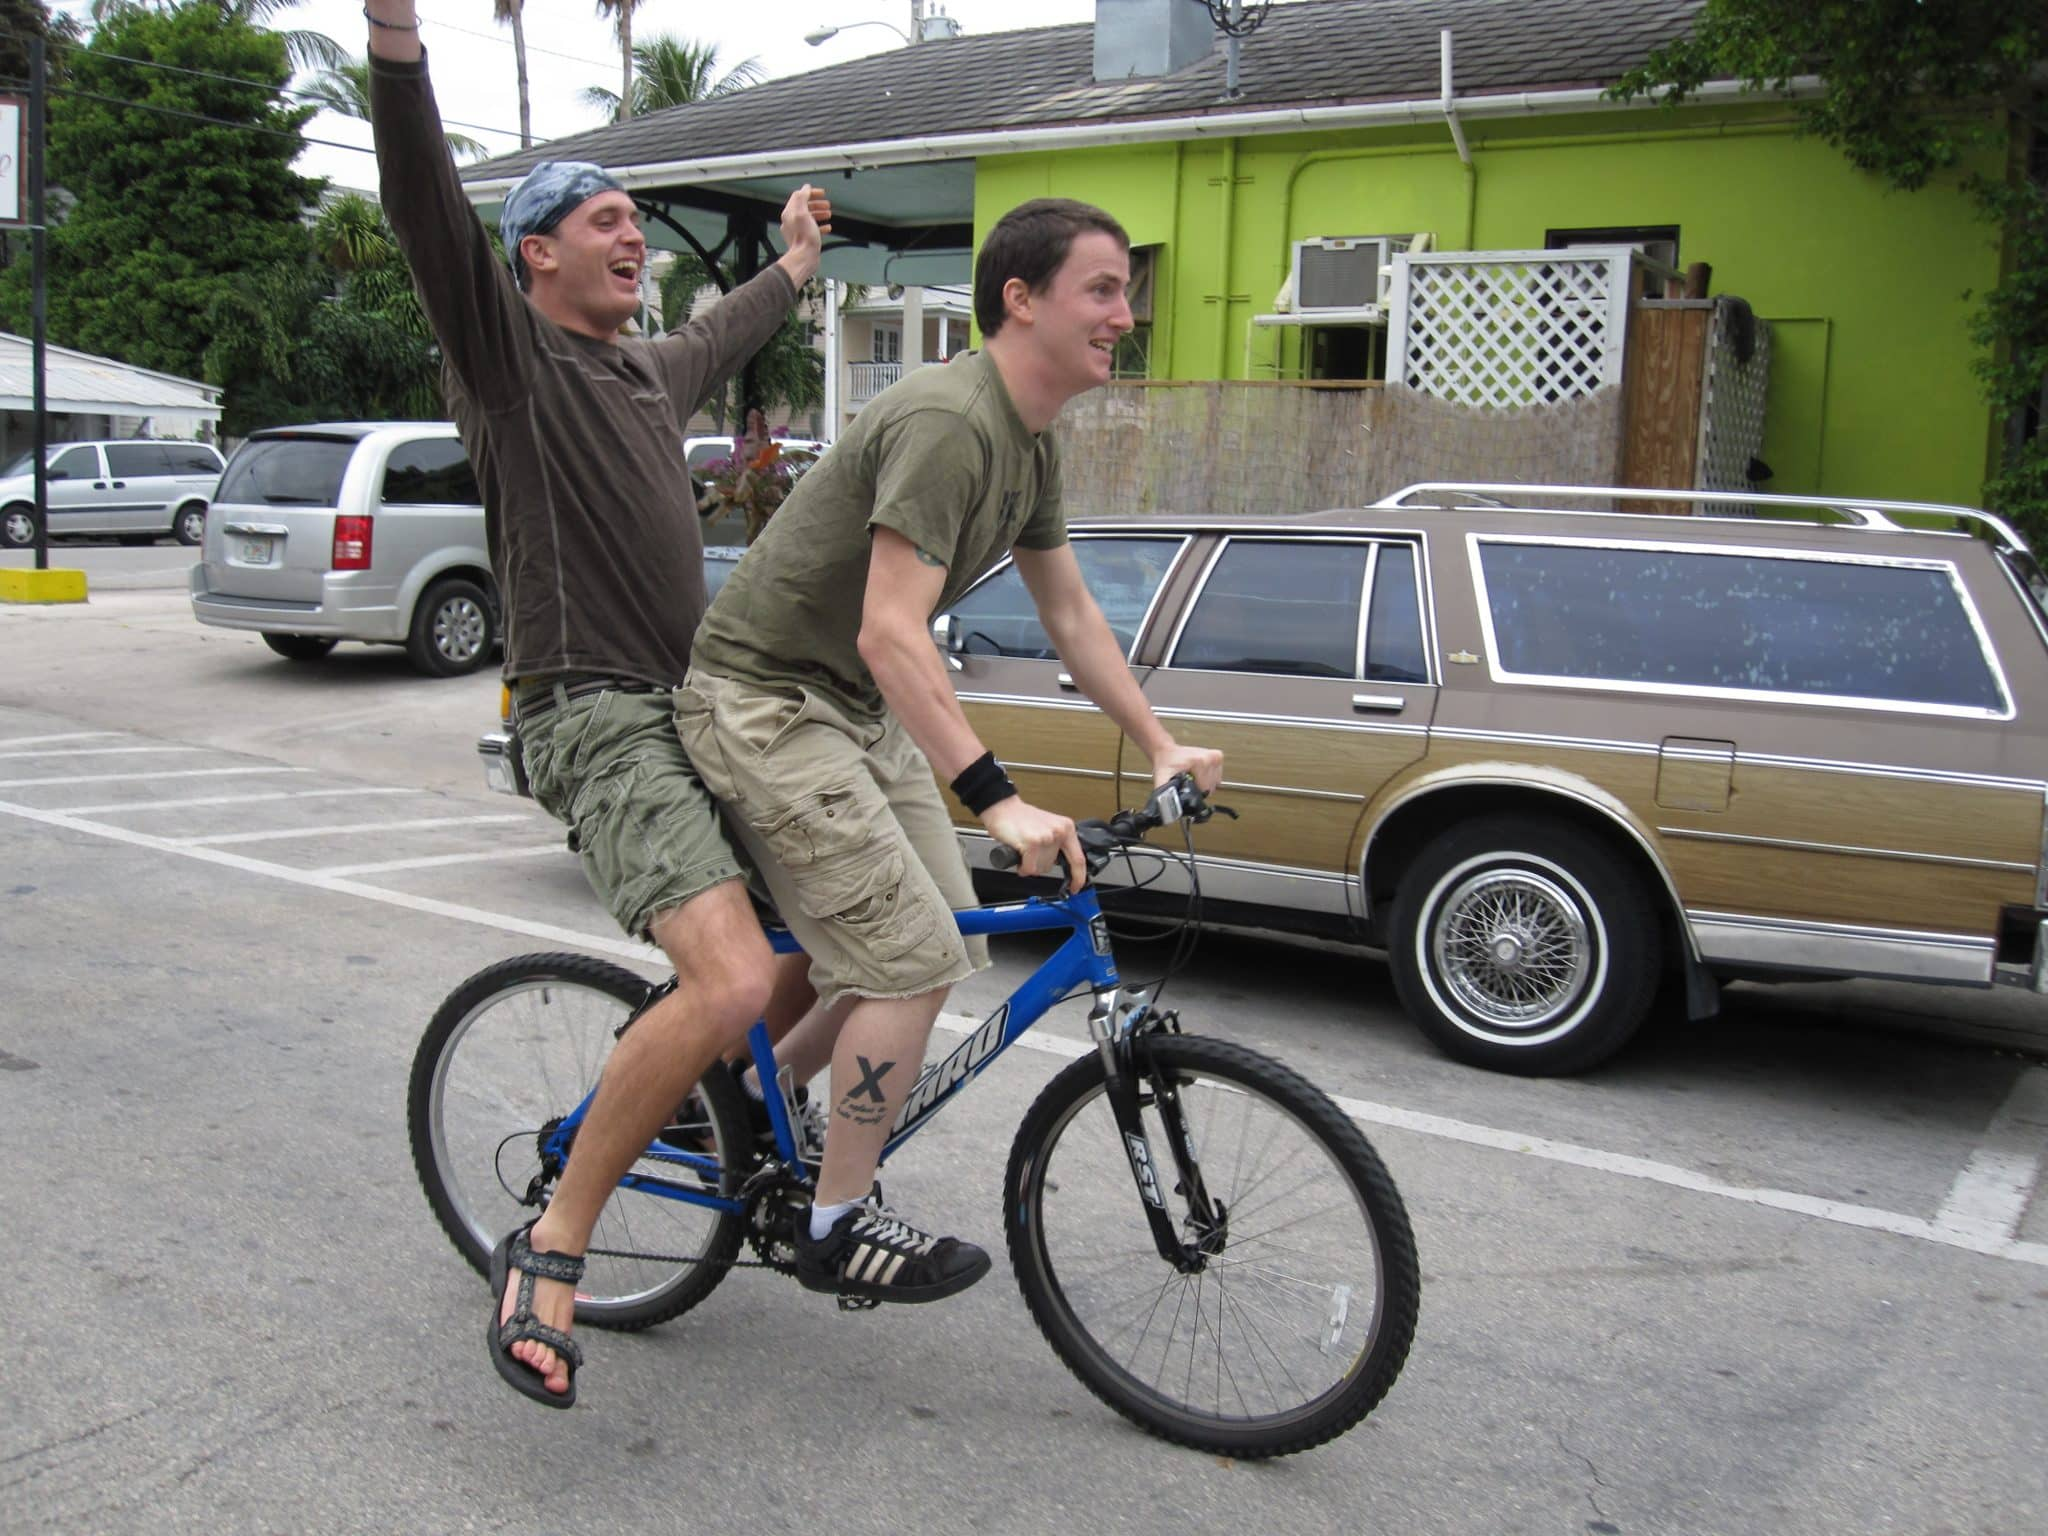 2-share-bike-key-west-fun-rare-finds-style